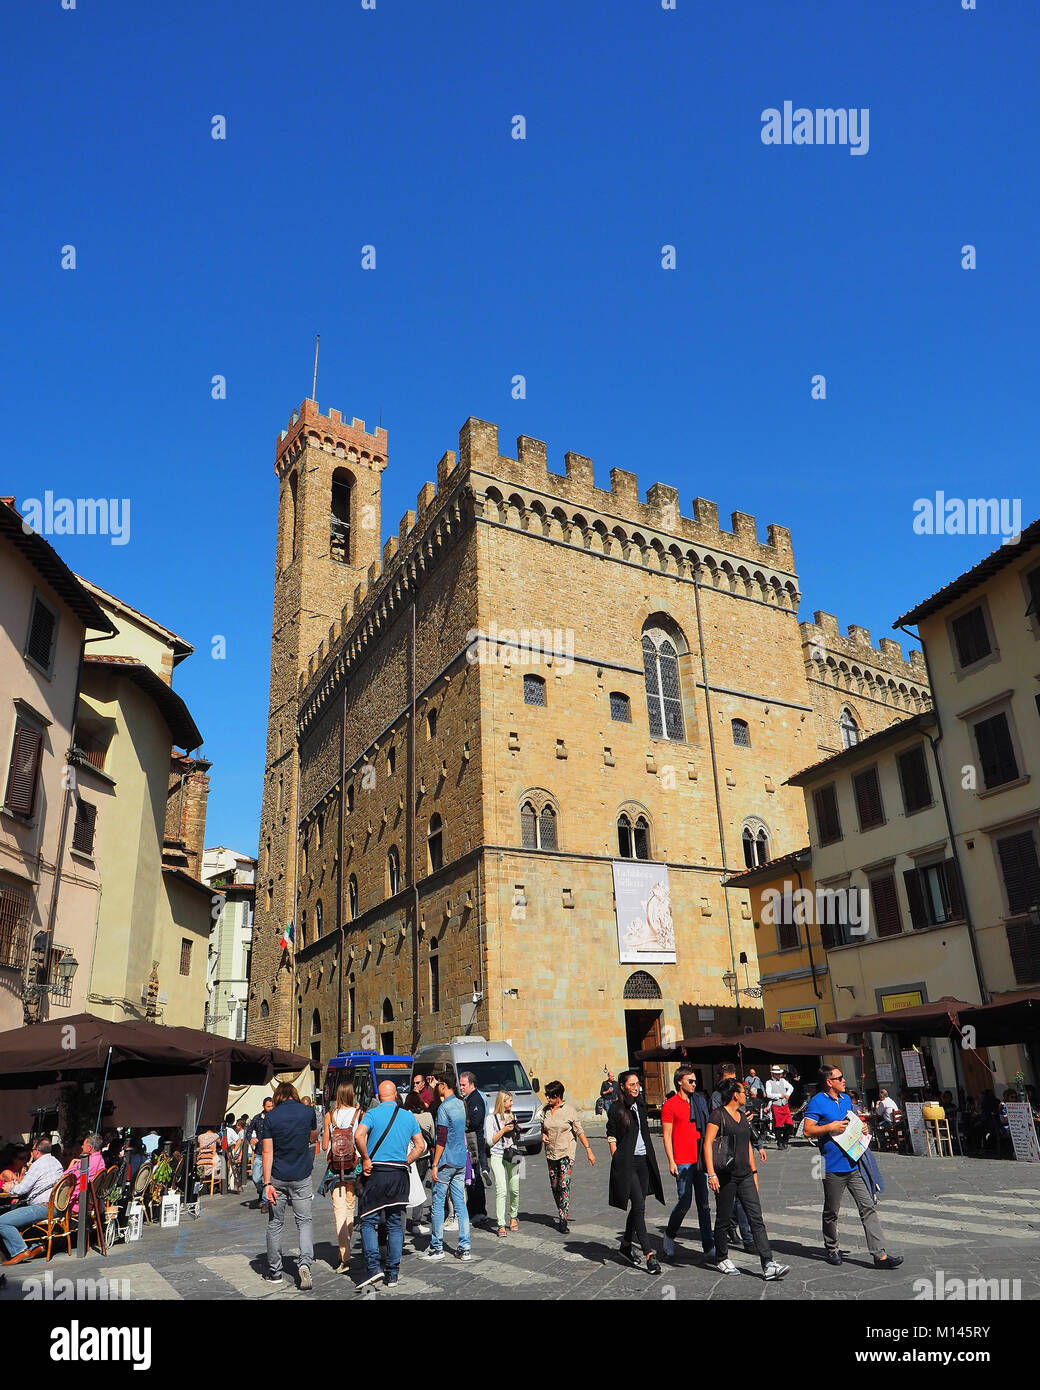 Europe,Italy,Tuscany,Florence,tourist visit the old town - Stock Image